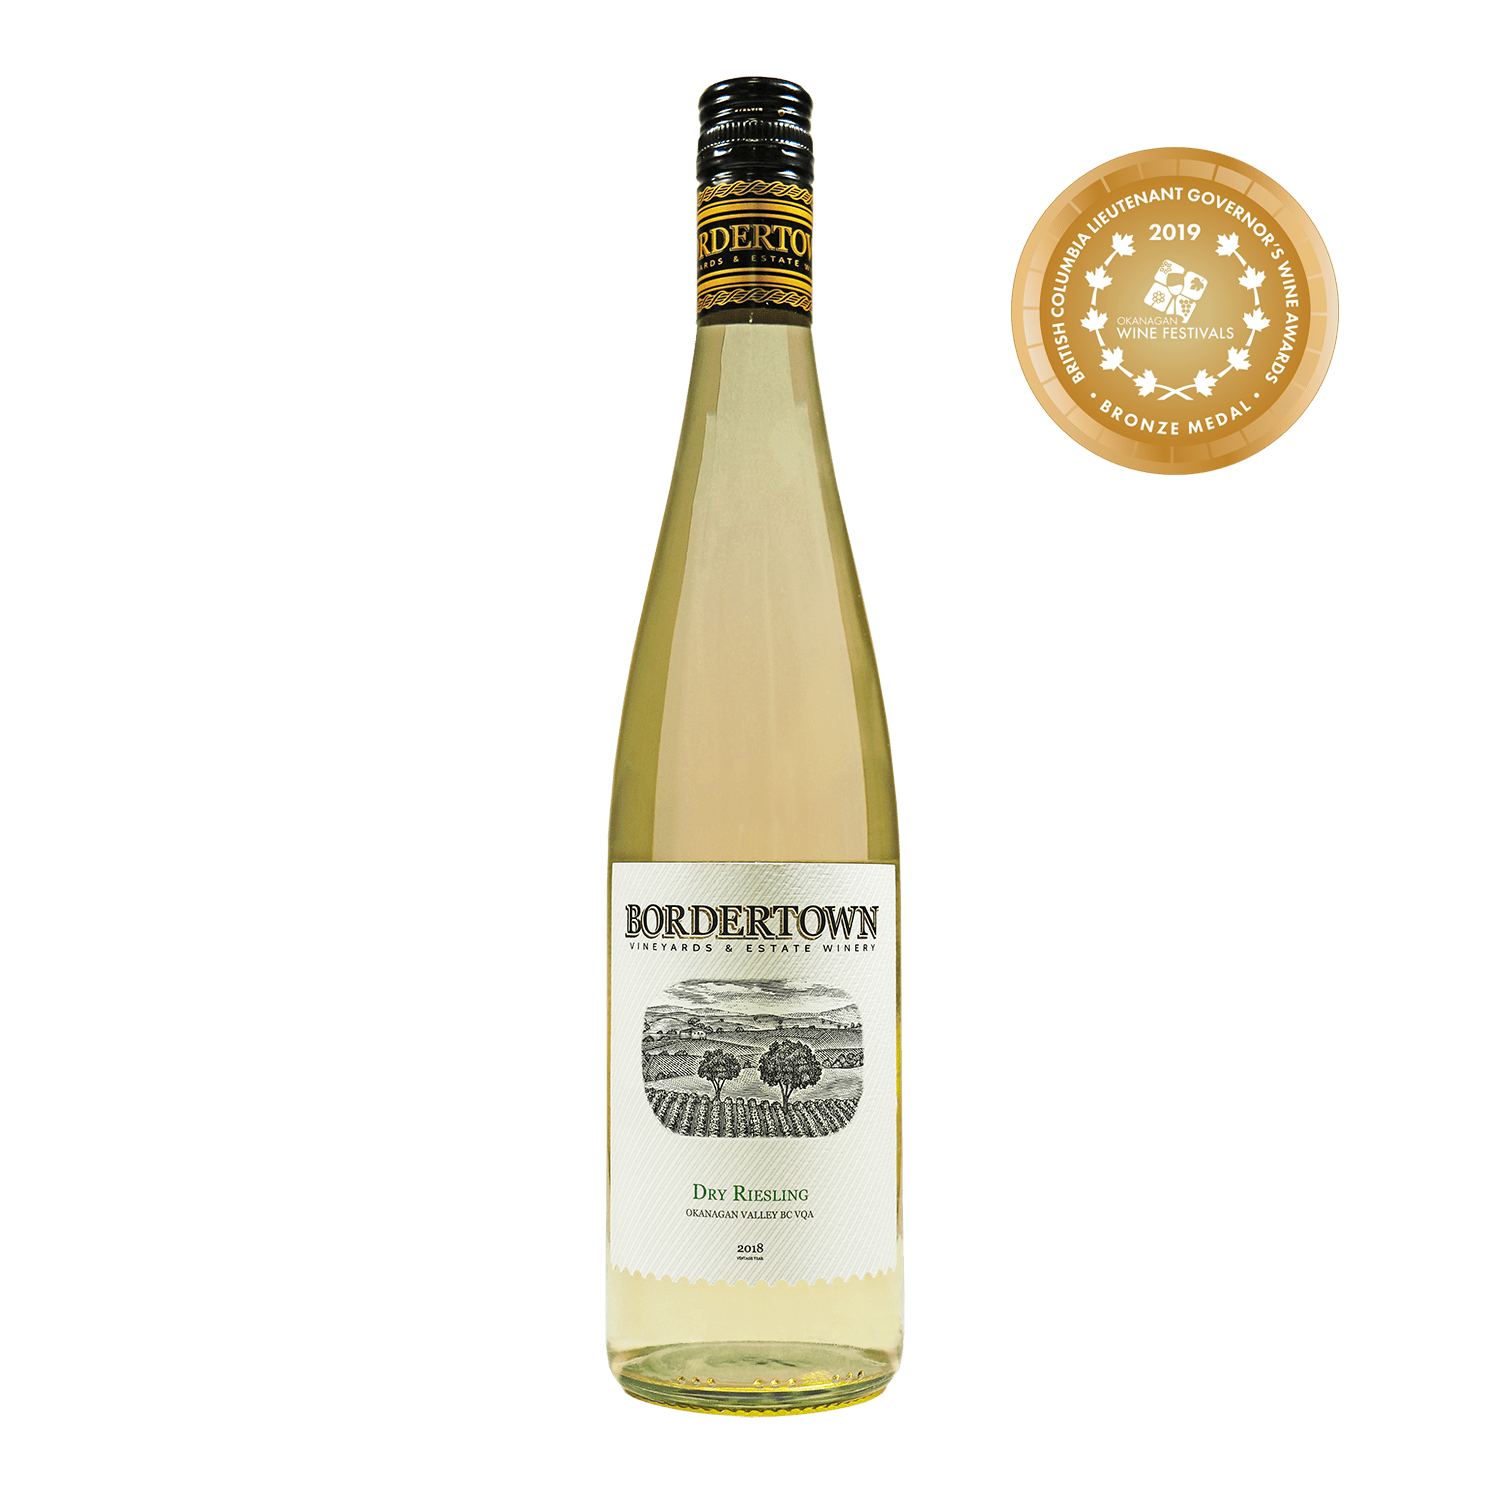 Dry Riesling 2018